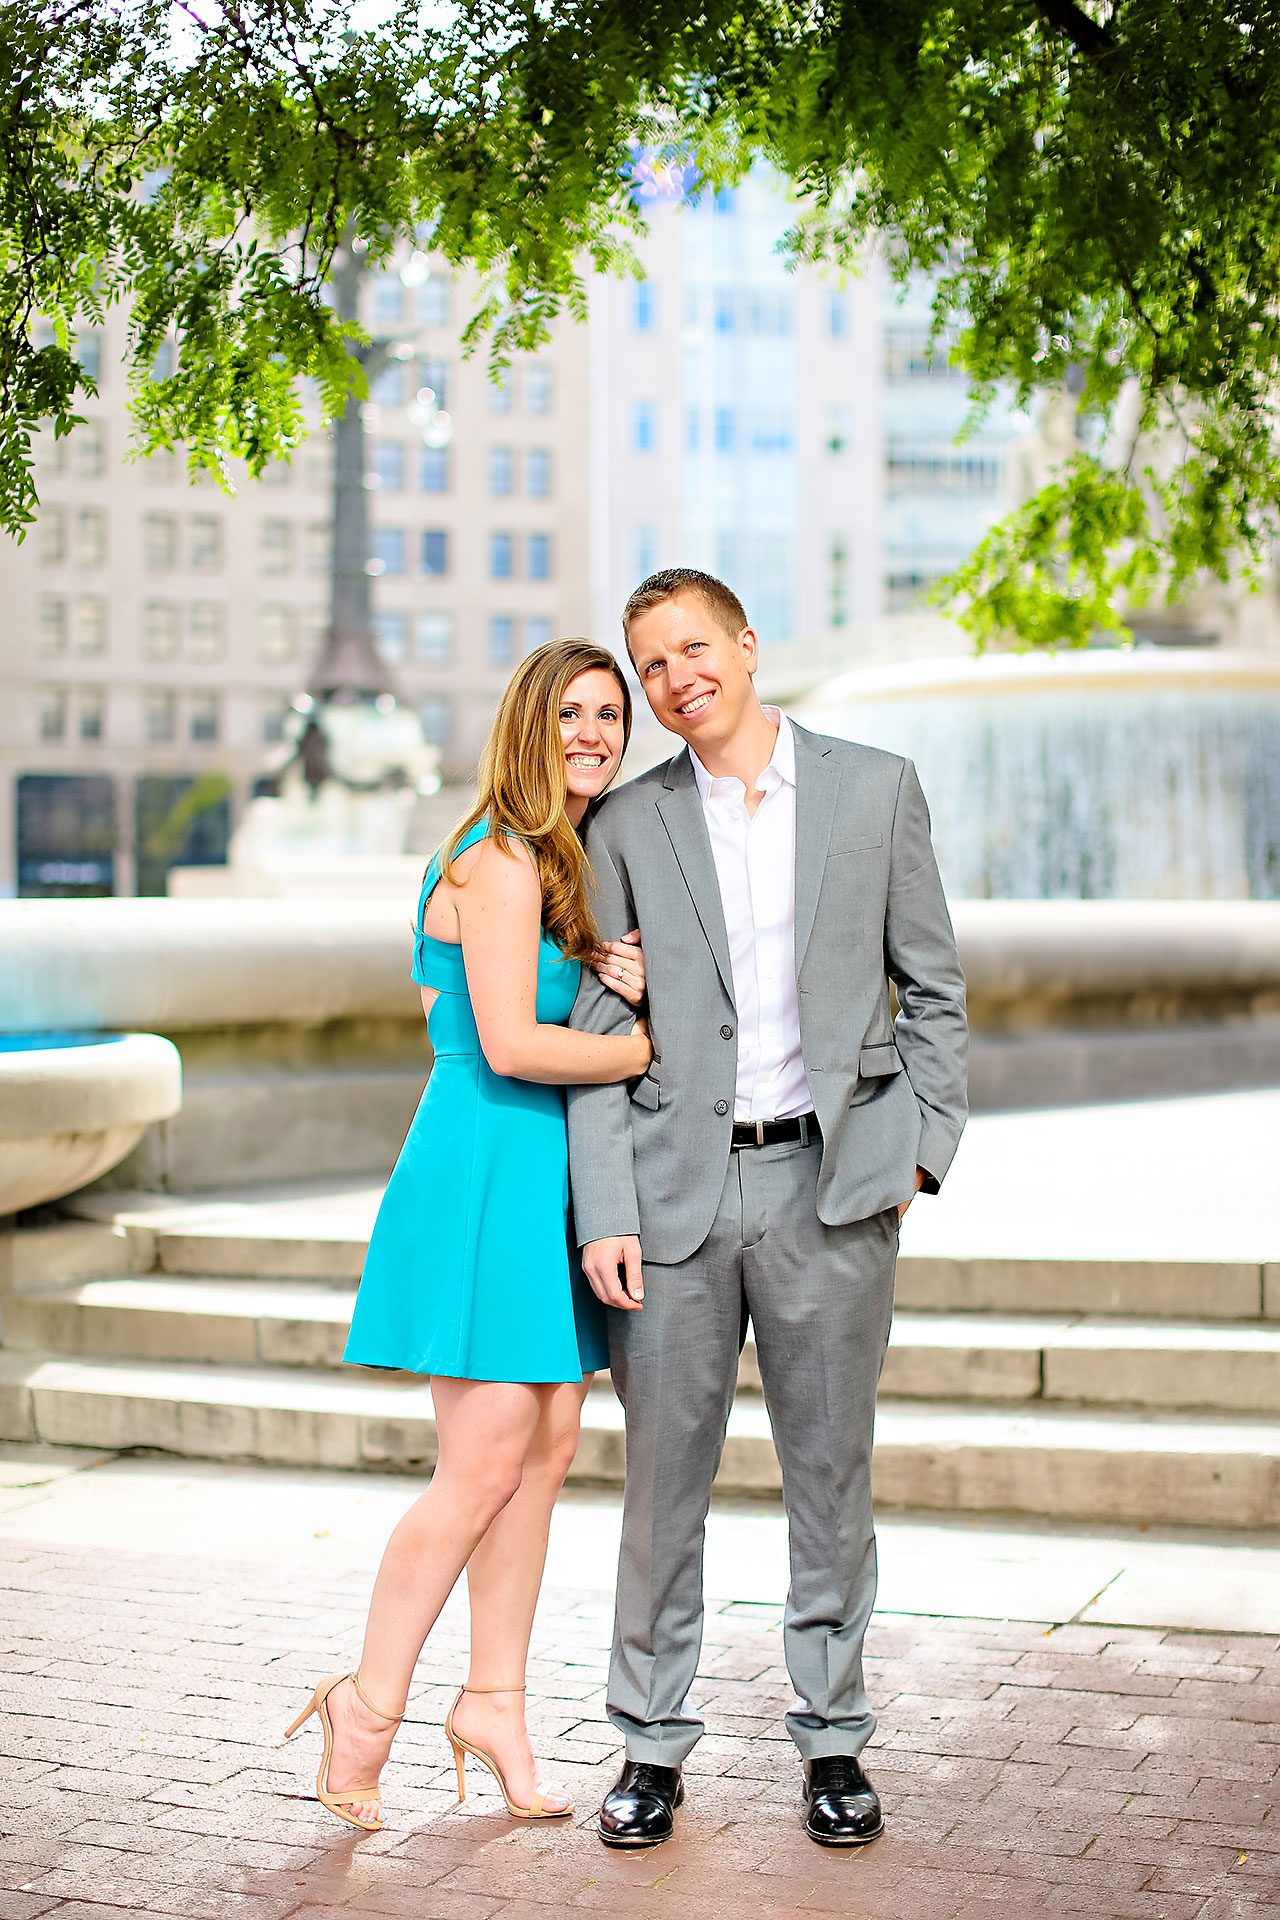 Chelsea Jeff Downtown Indy Engagement Session 005